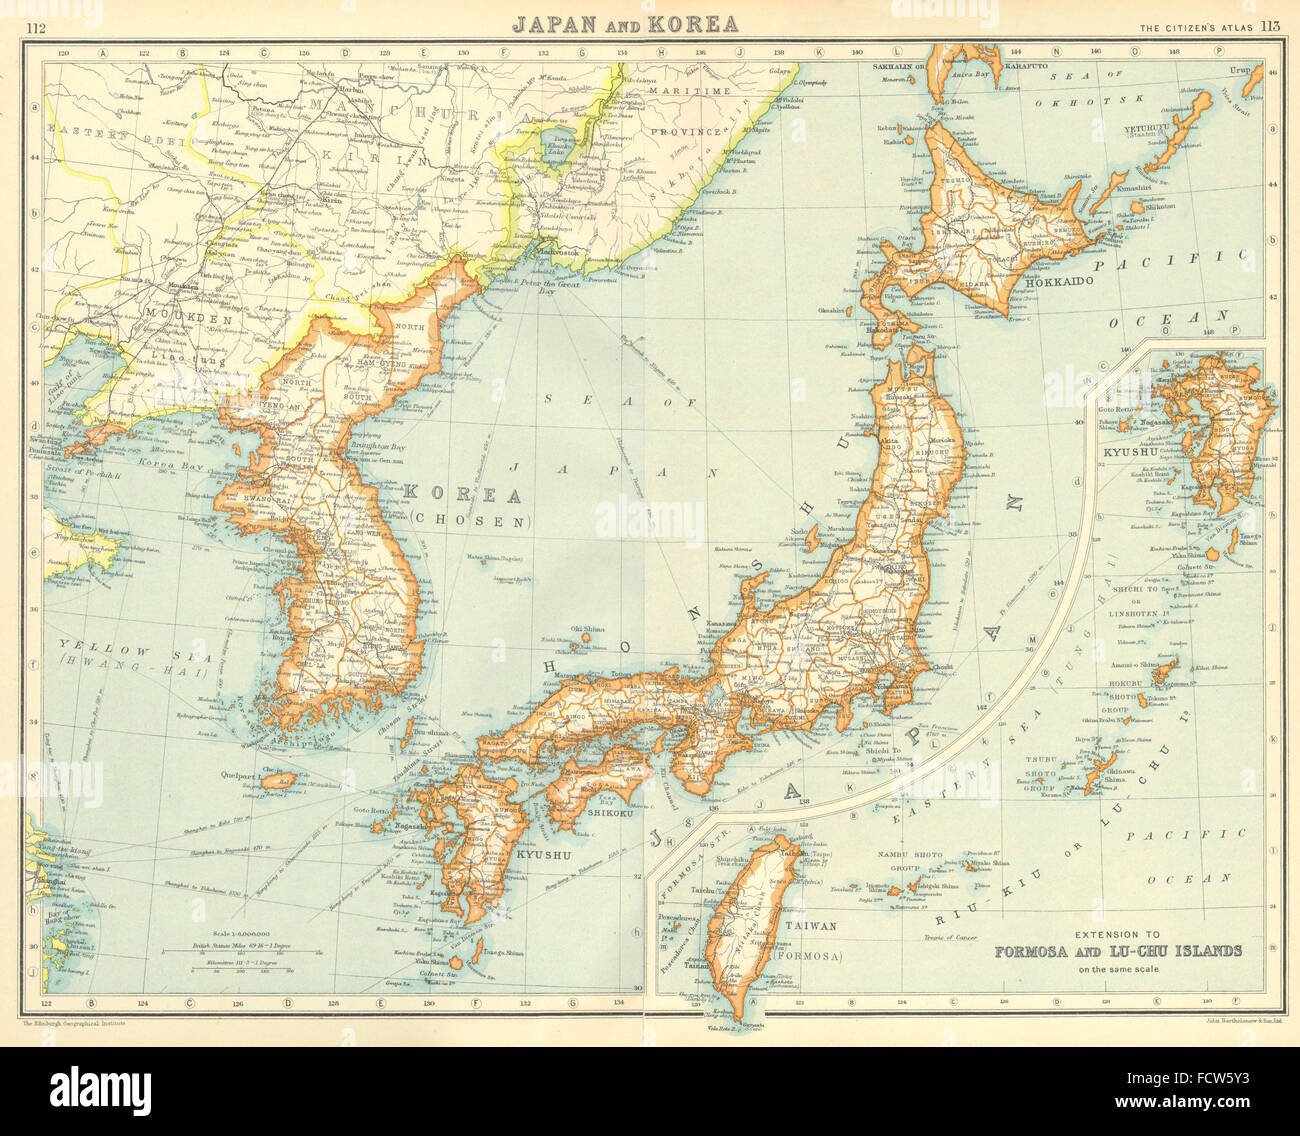 Japanese empire japan its possessions incl korea formosa japanese empire japan its possessions incl korea formosa taiwan 1924 map gumiabroncs Image collections